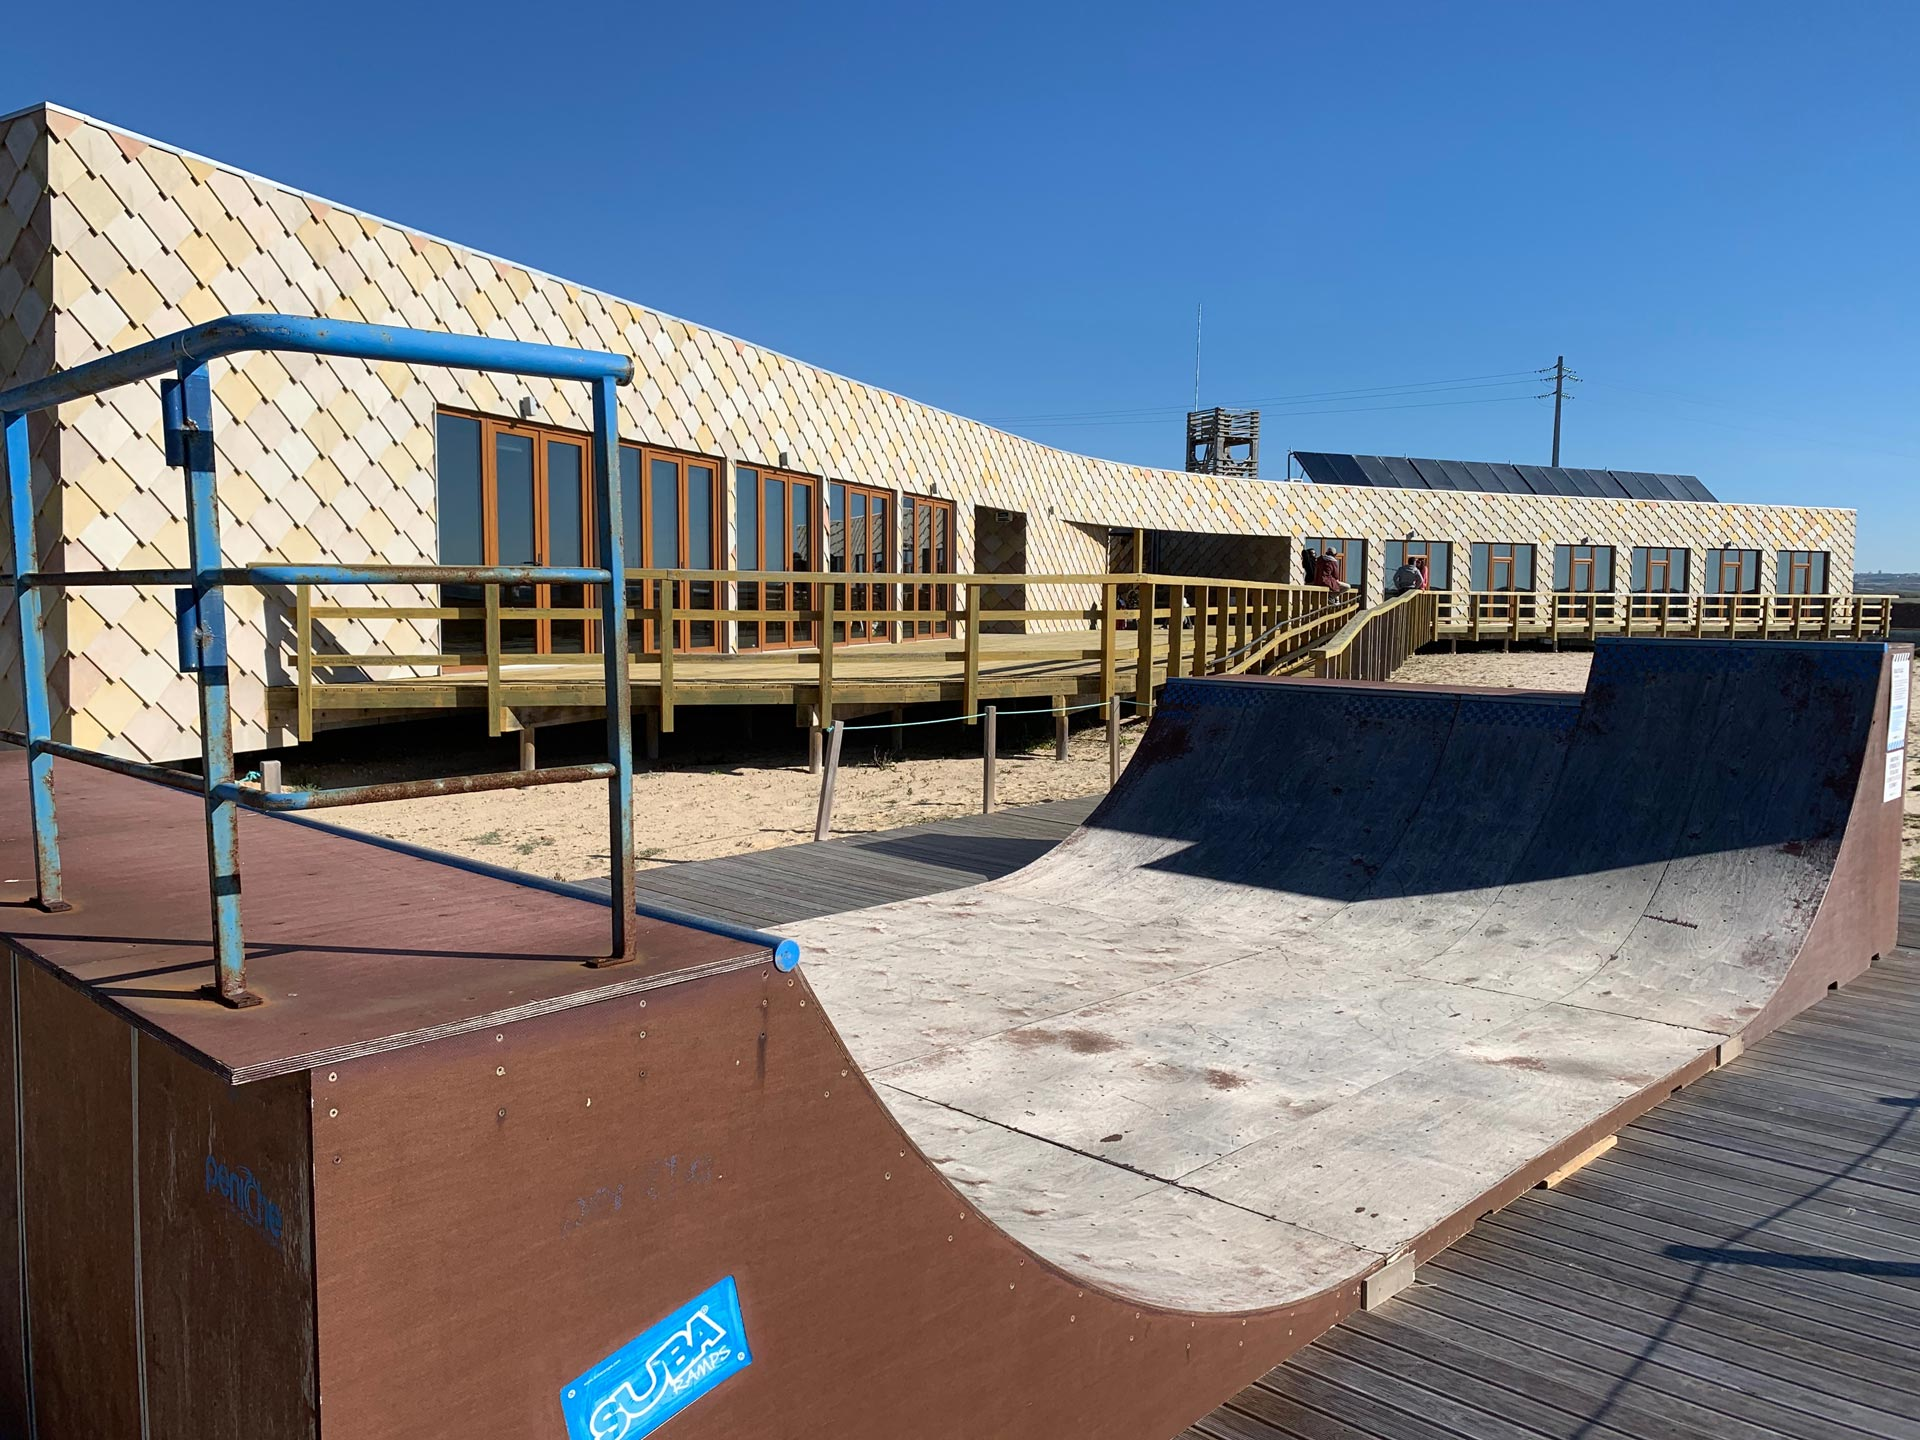 Nika-Brothers-Open-High-Performance-SUP-Center-in-Peniche-Portugal-skate-ramp